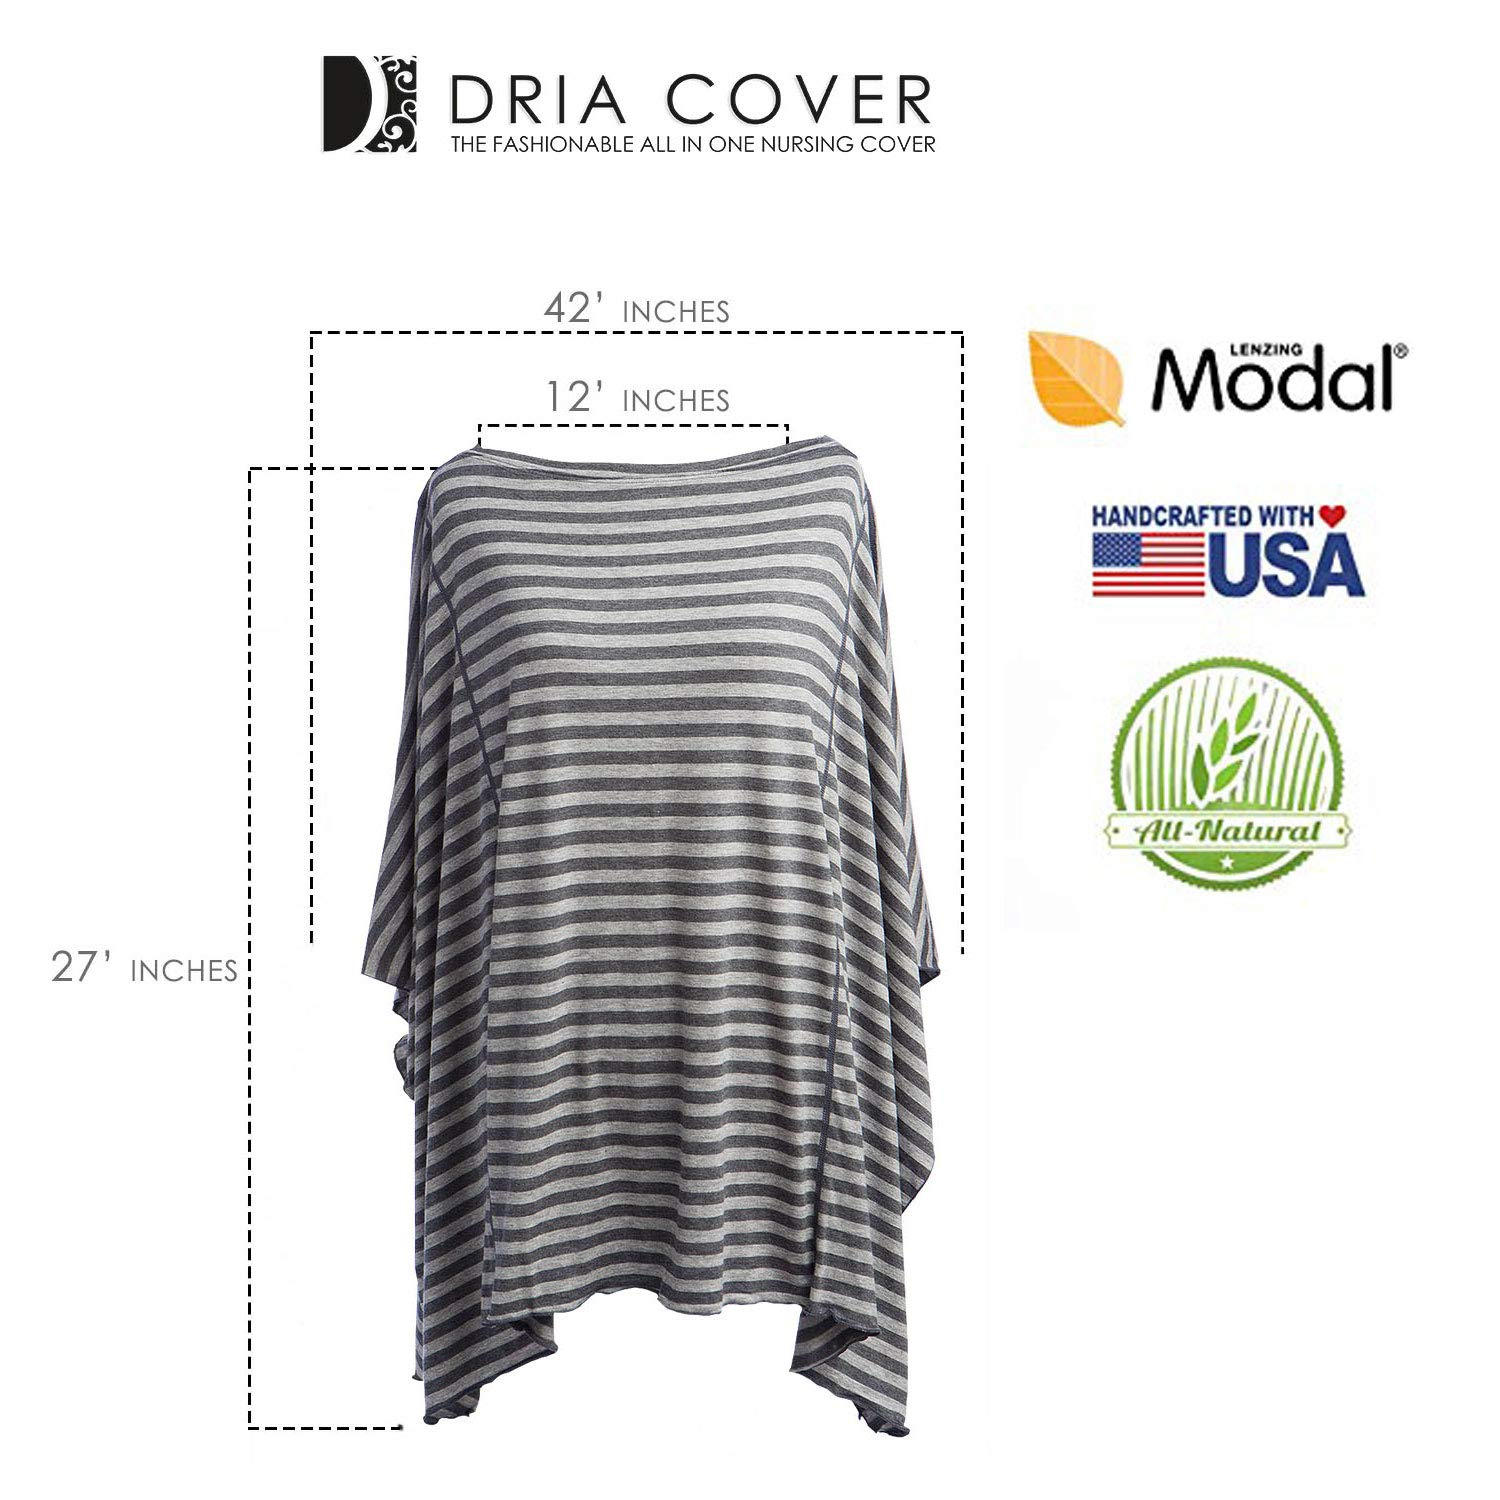 Fashionable Nursing Covers by DRIA - 'The All-In-One, Stroller Cover, Car Seat Cover' - Made in USA from Premium Four Way Stretch and Breathable Modal Fabric (Oslo Style: Grey Stripe) by DRIA Cover (Image #3)